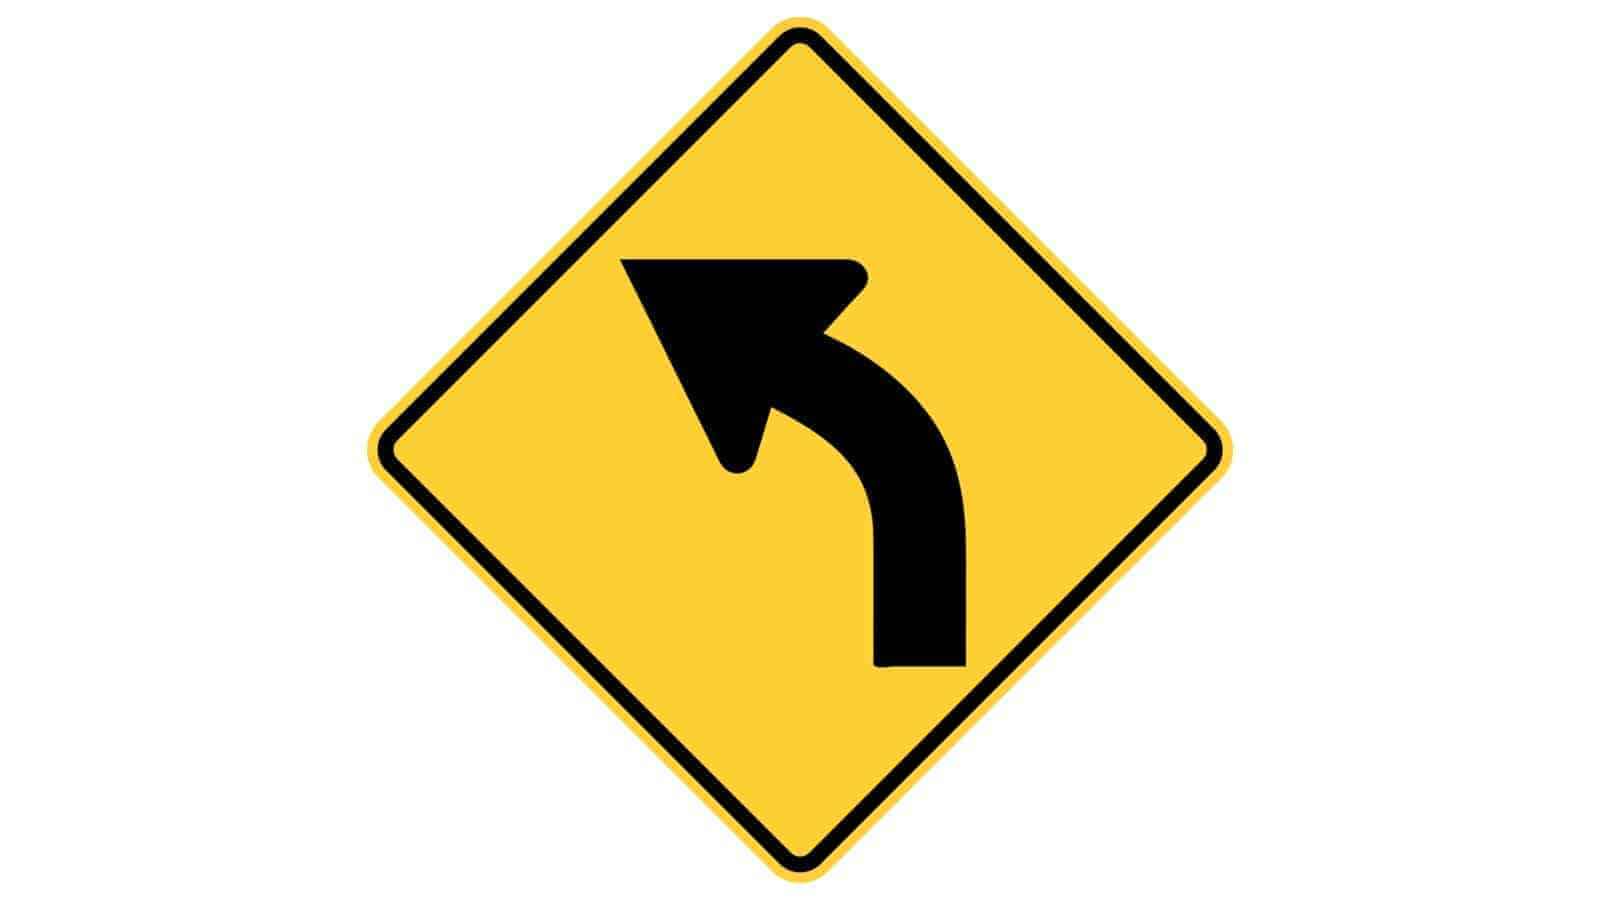 Warning sign curve to the left